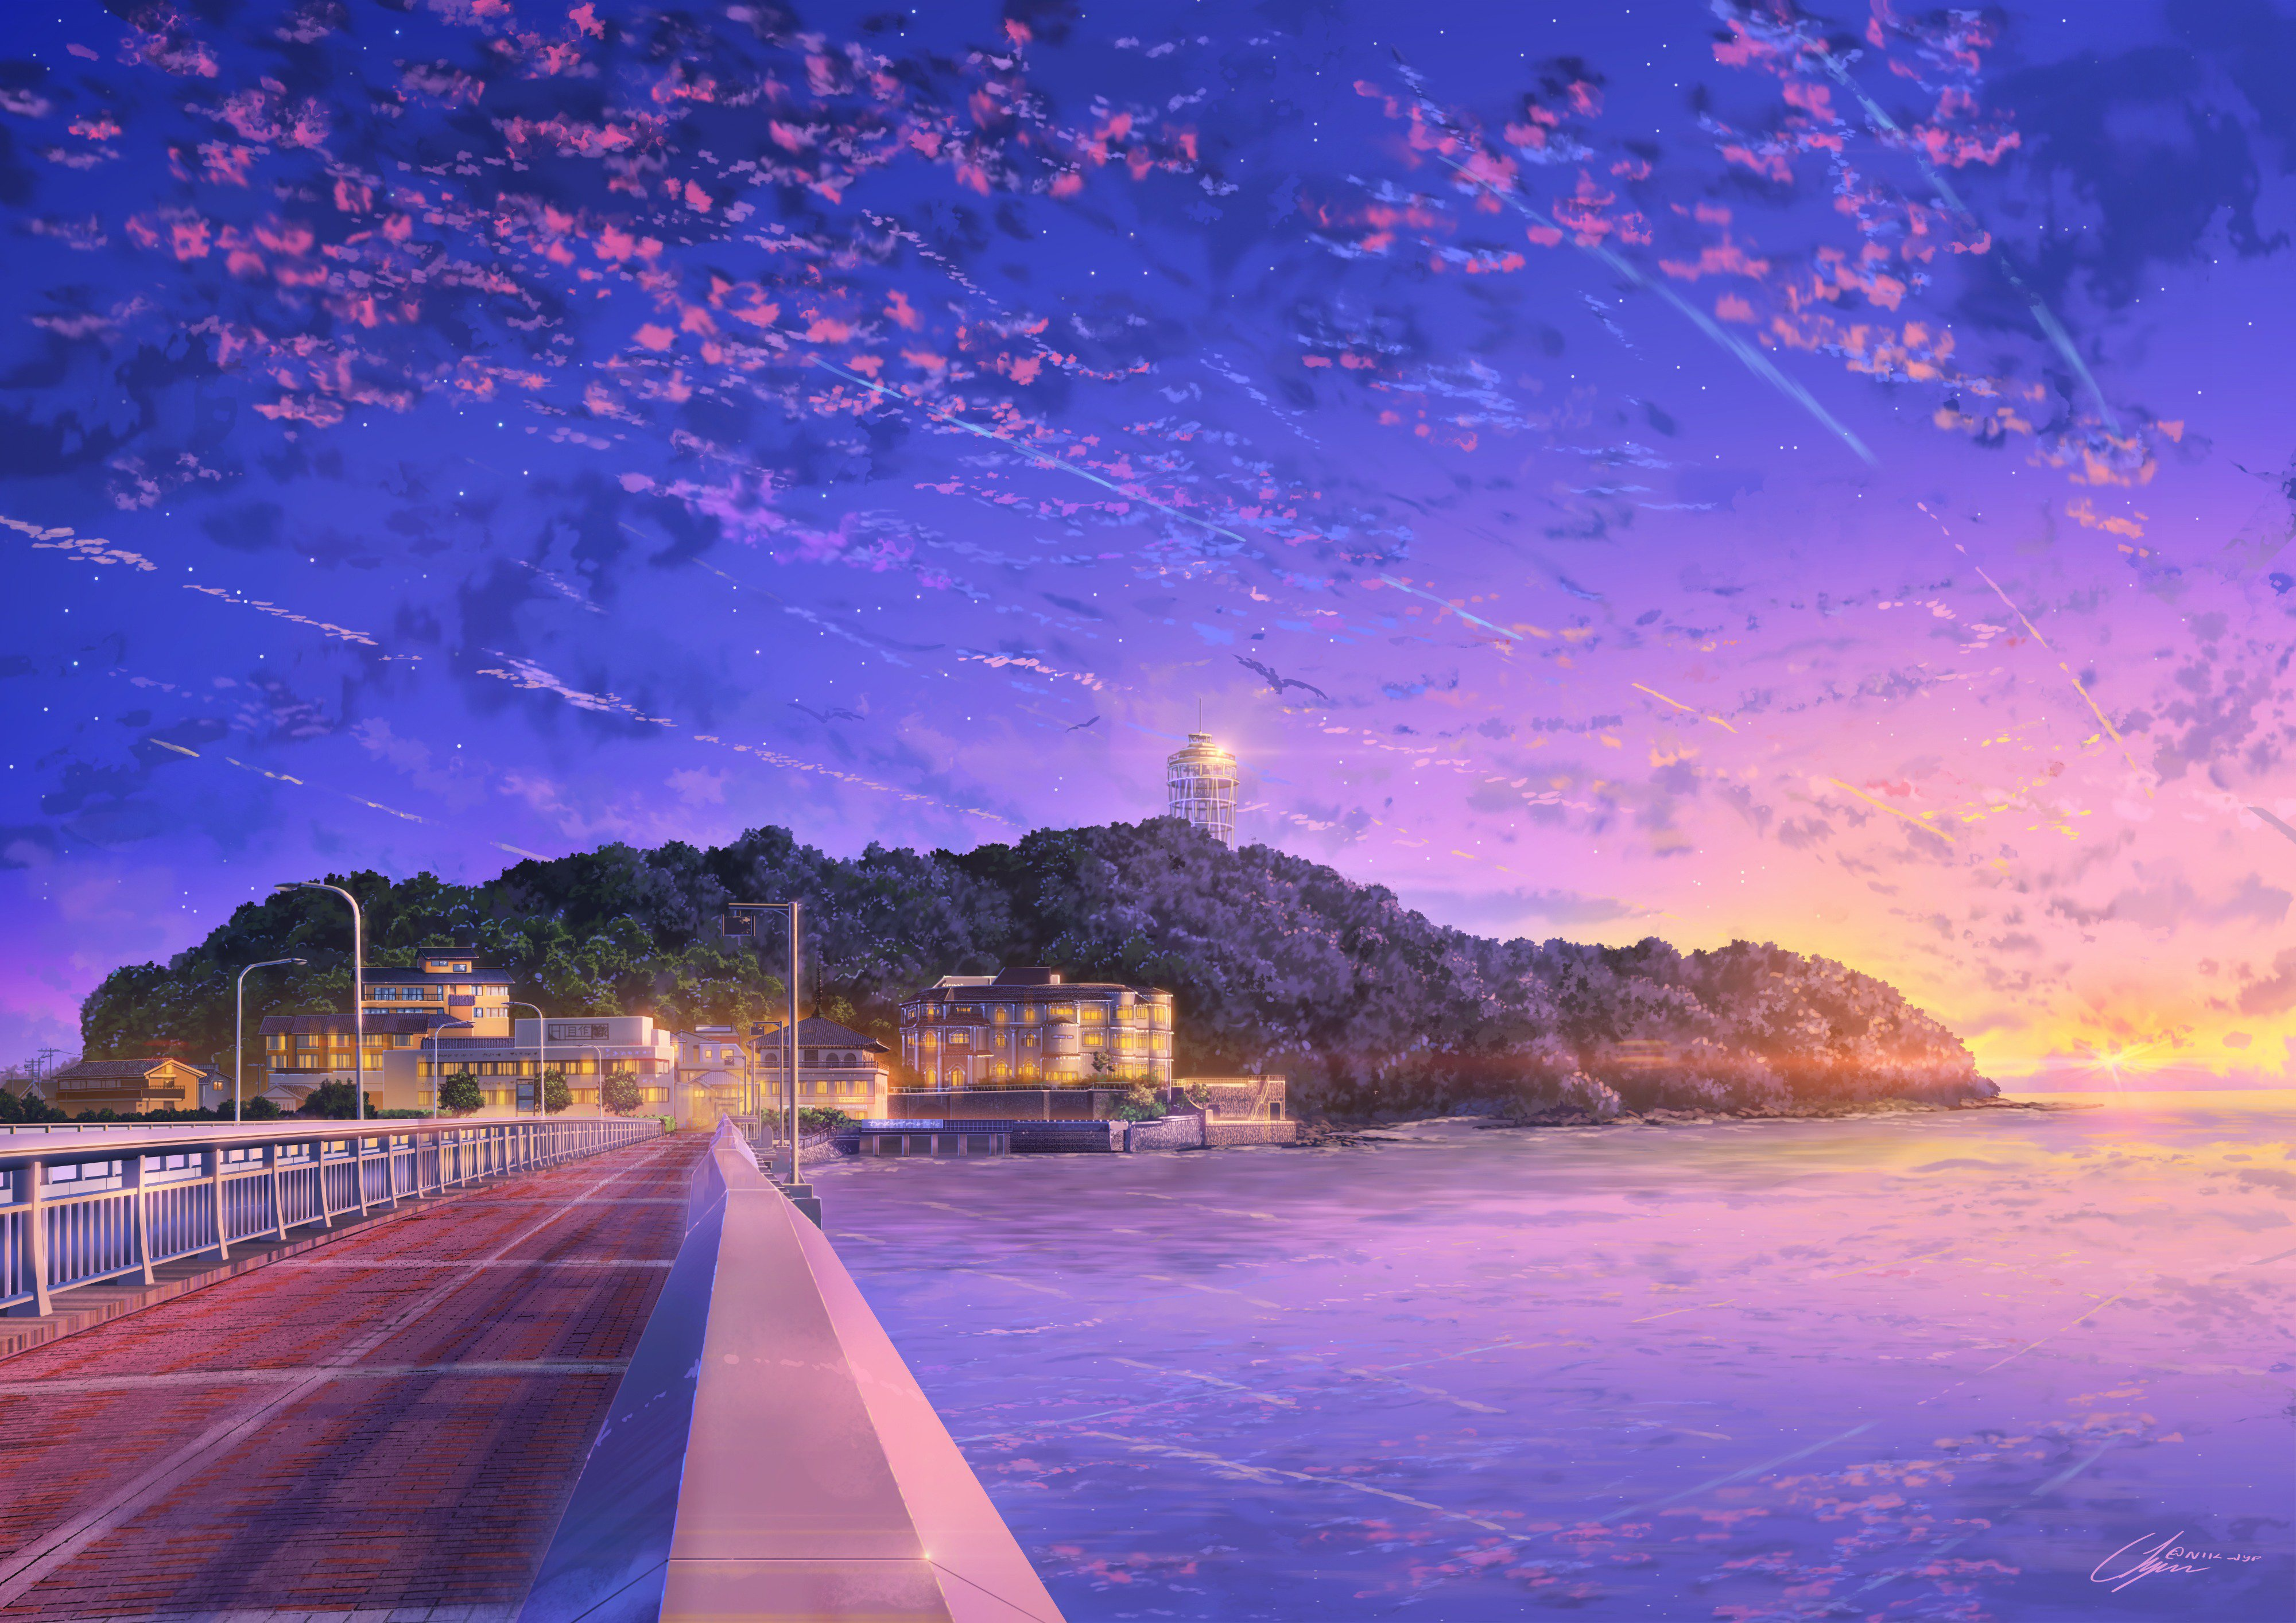 Japan Anime Sky 4k Hd Anime 4k Wallpapers Images